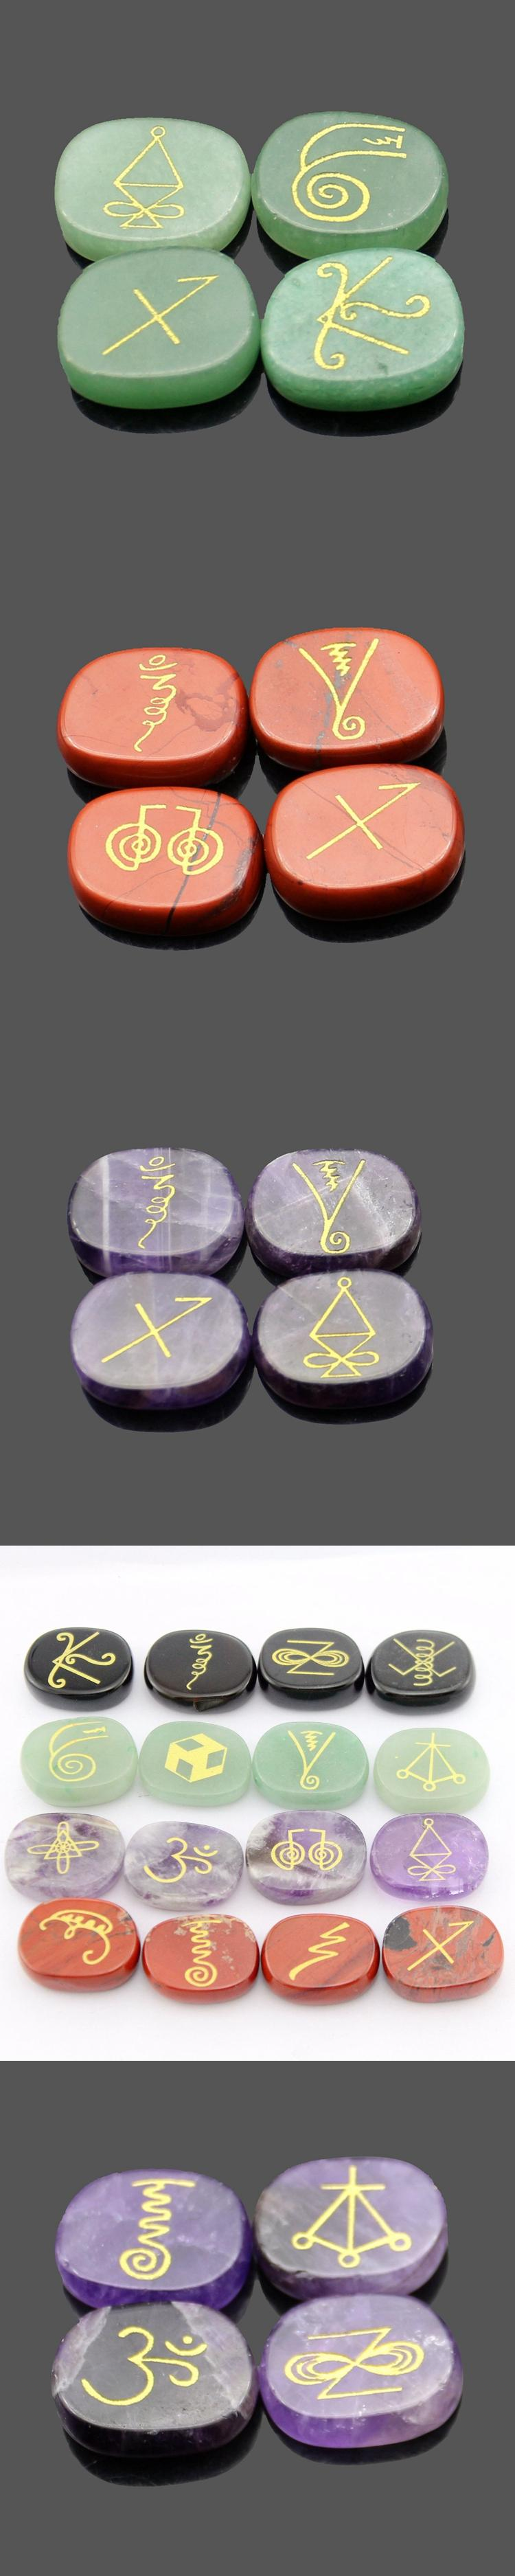 Factory cheap price pocket stones engraved 7 piece chakra stone crystals healing